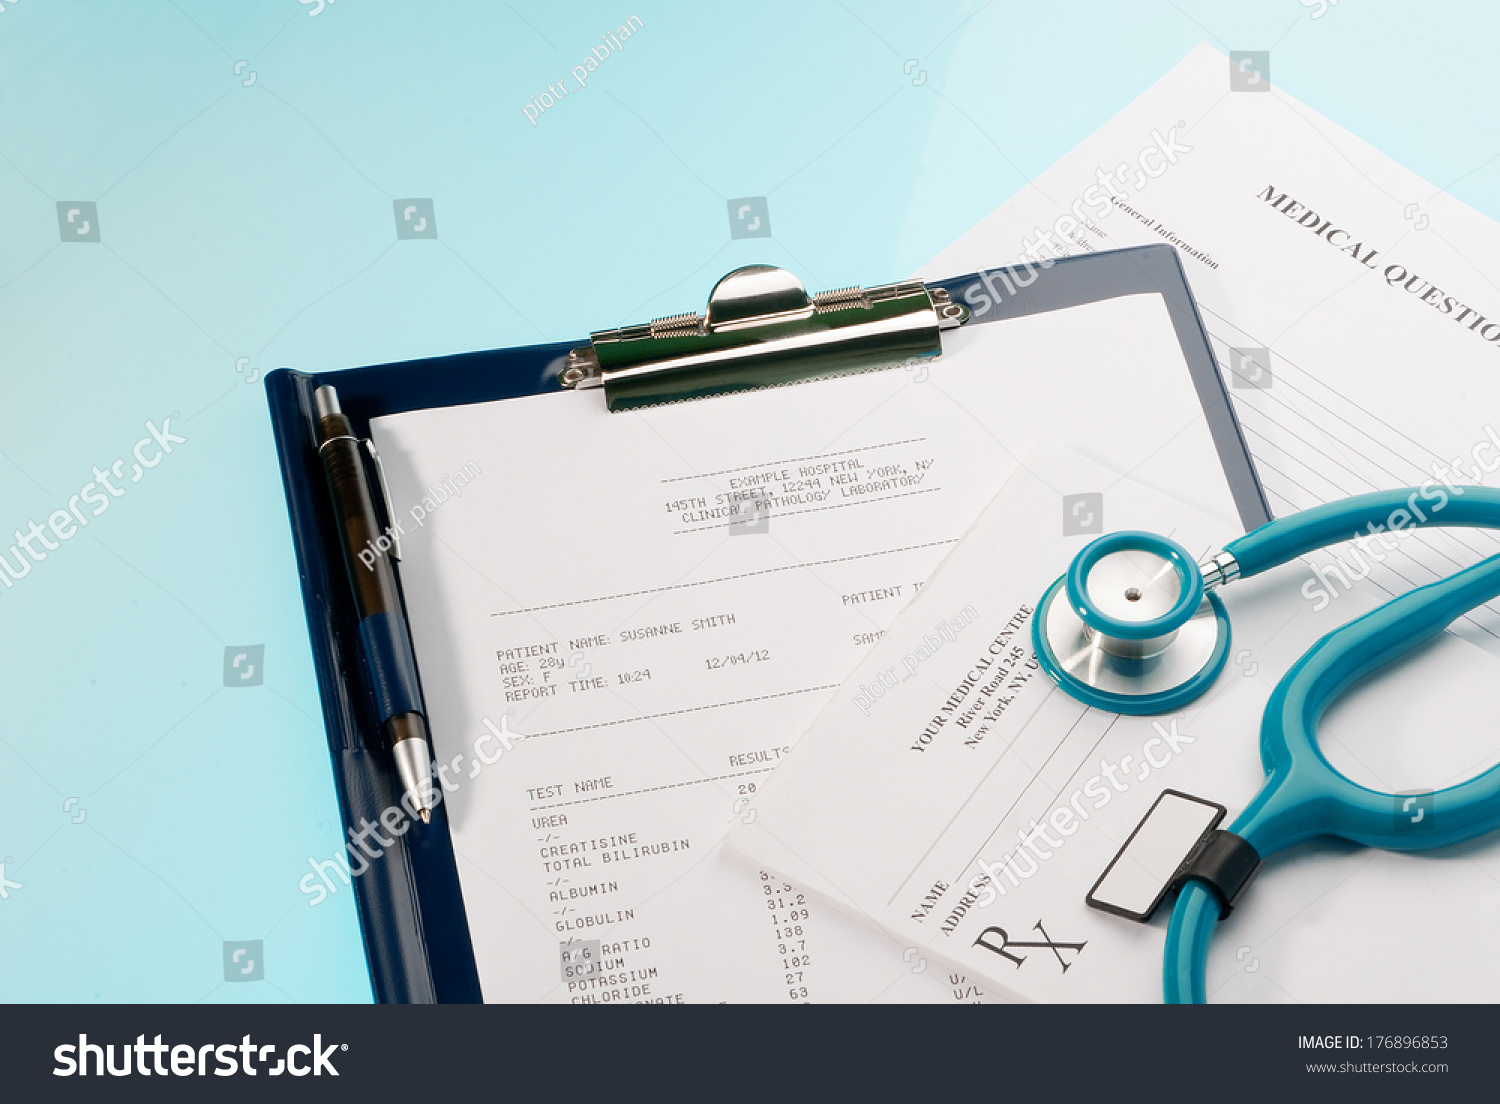 Medical documents medical questionnaire prescription and blood test with a stethoscope on blue background